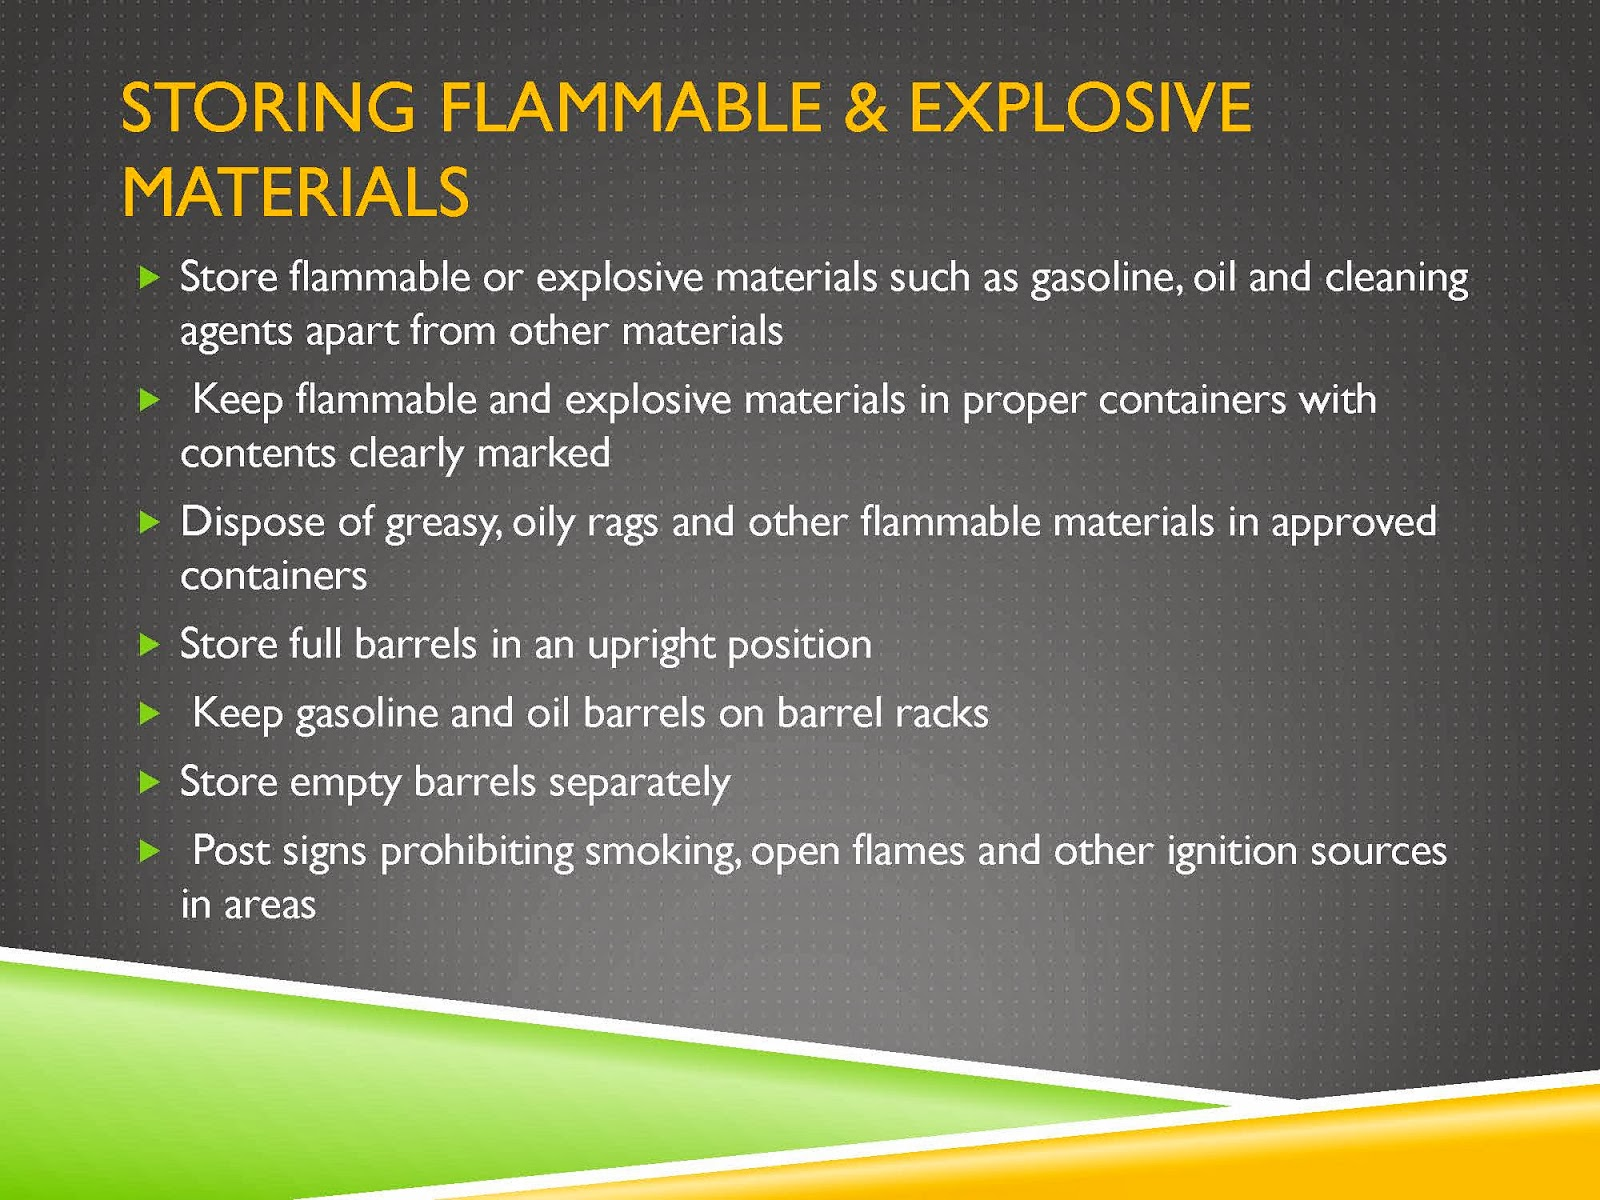 FLAMMABLE AND EXPLOSIVE MATERIALS